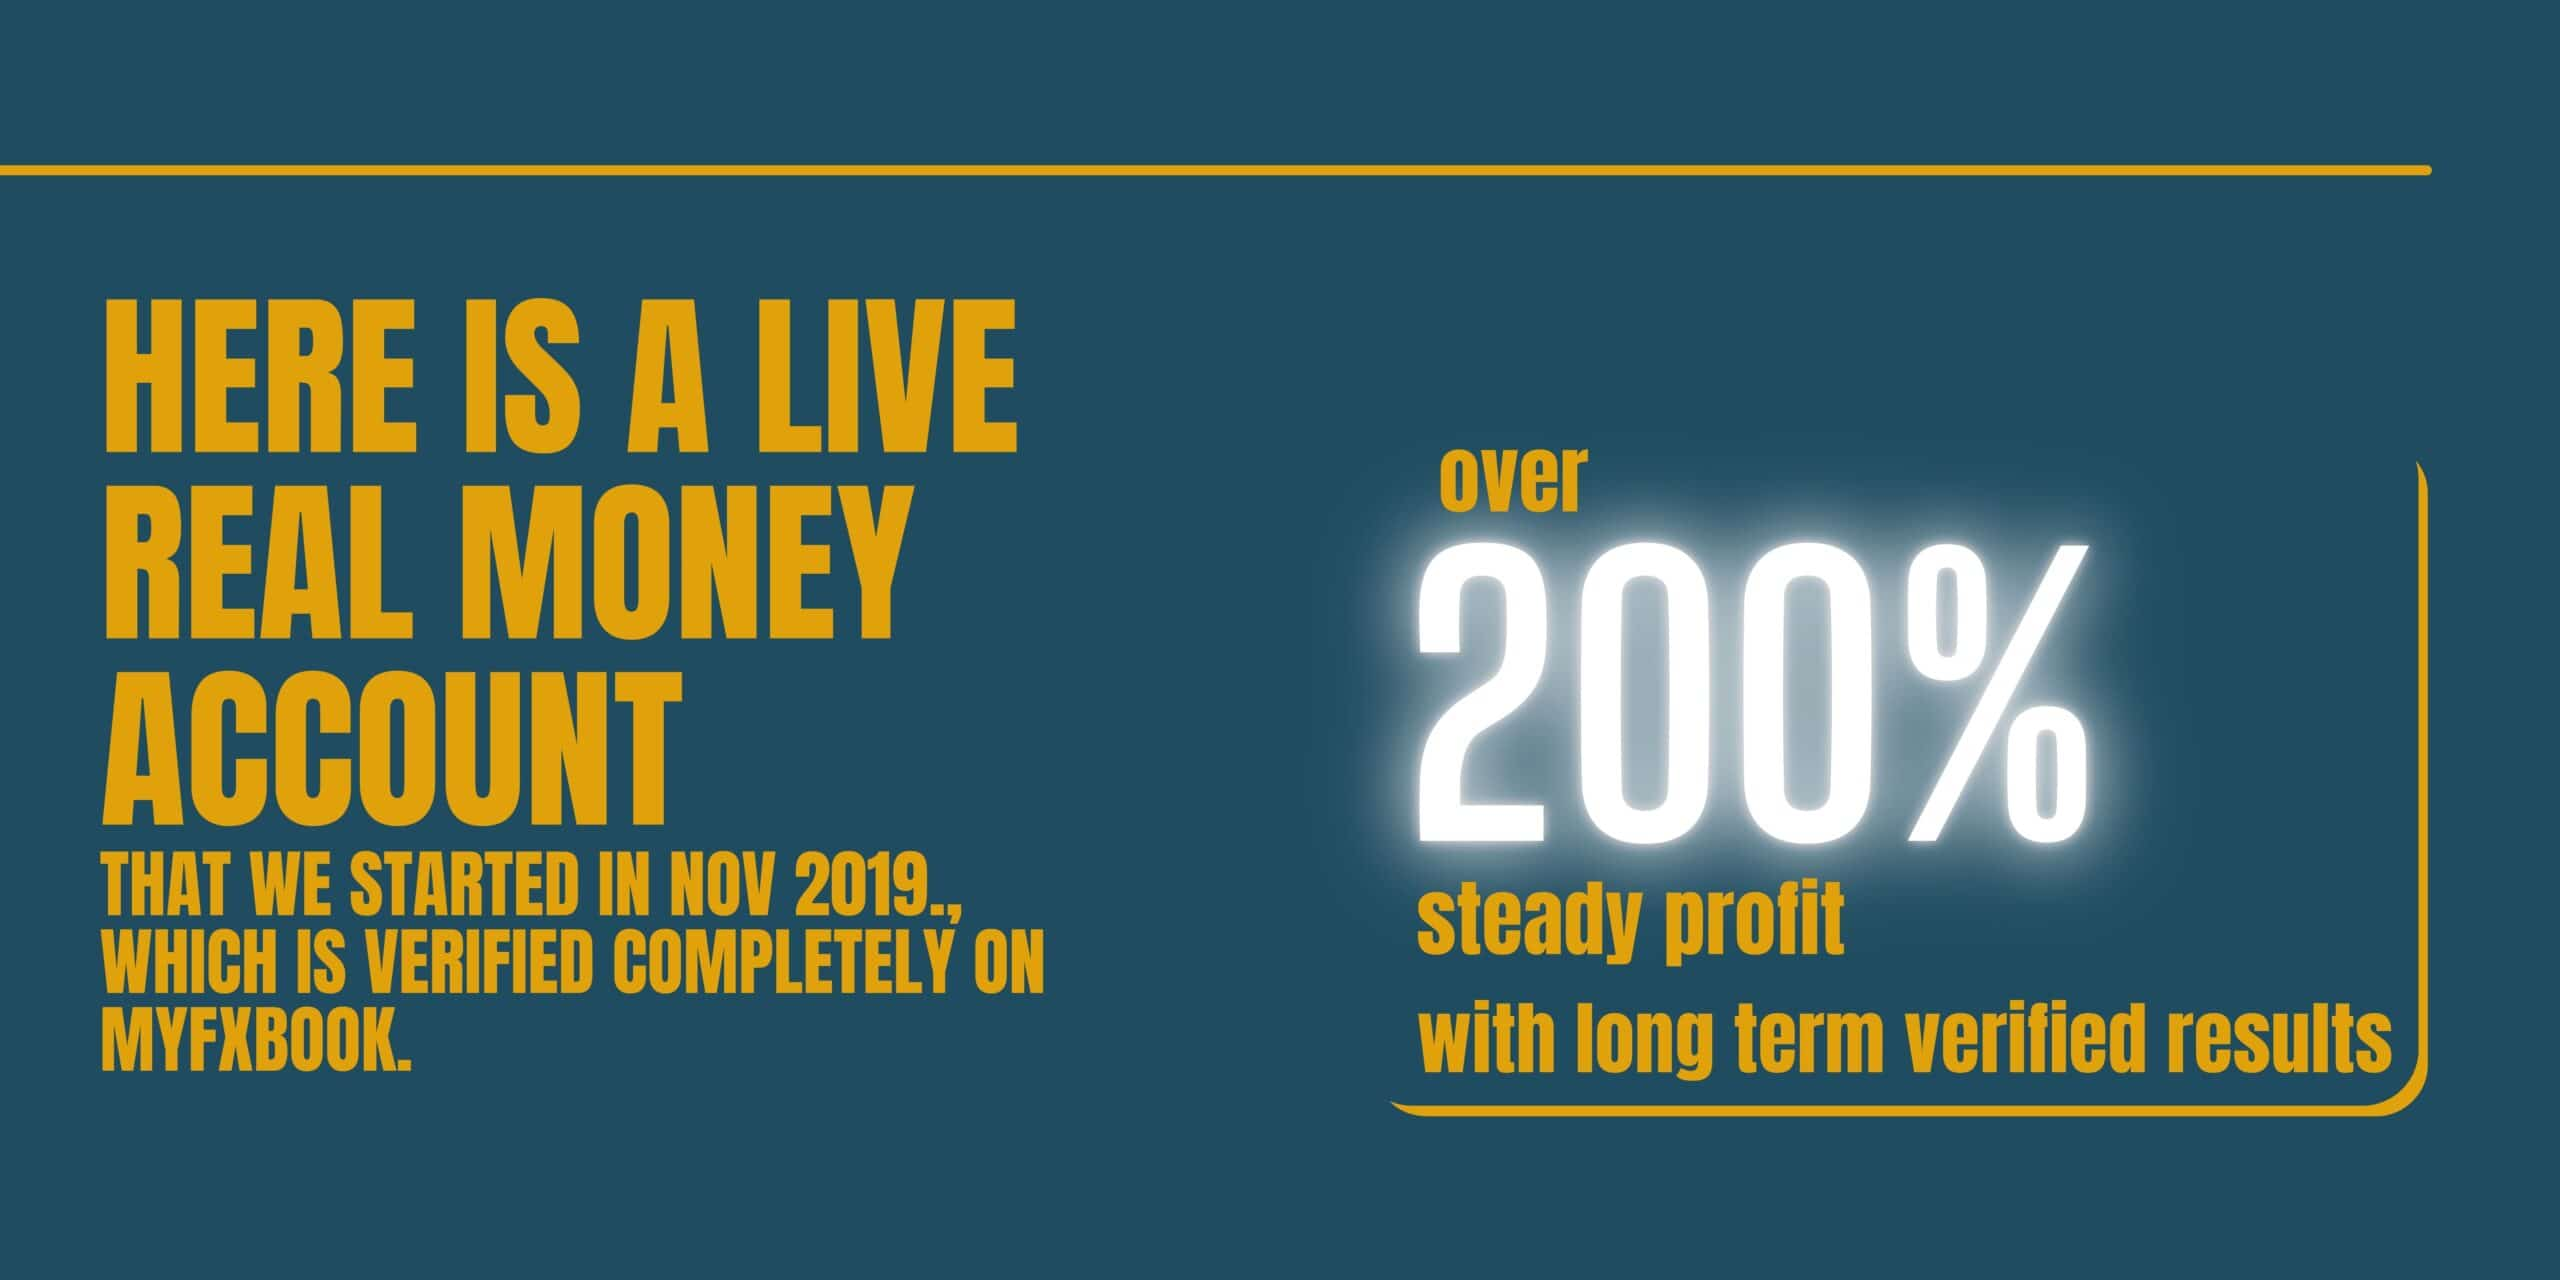 Here is a LIVE REAL MONEY Account that we started in November 2009 with a deposit of 4,750 USD.